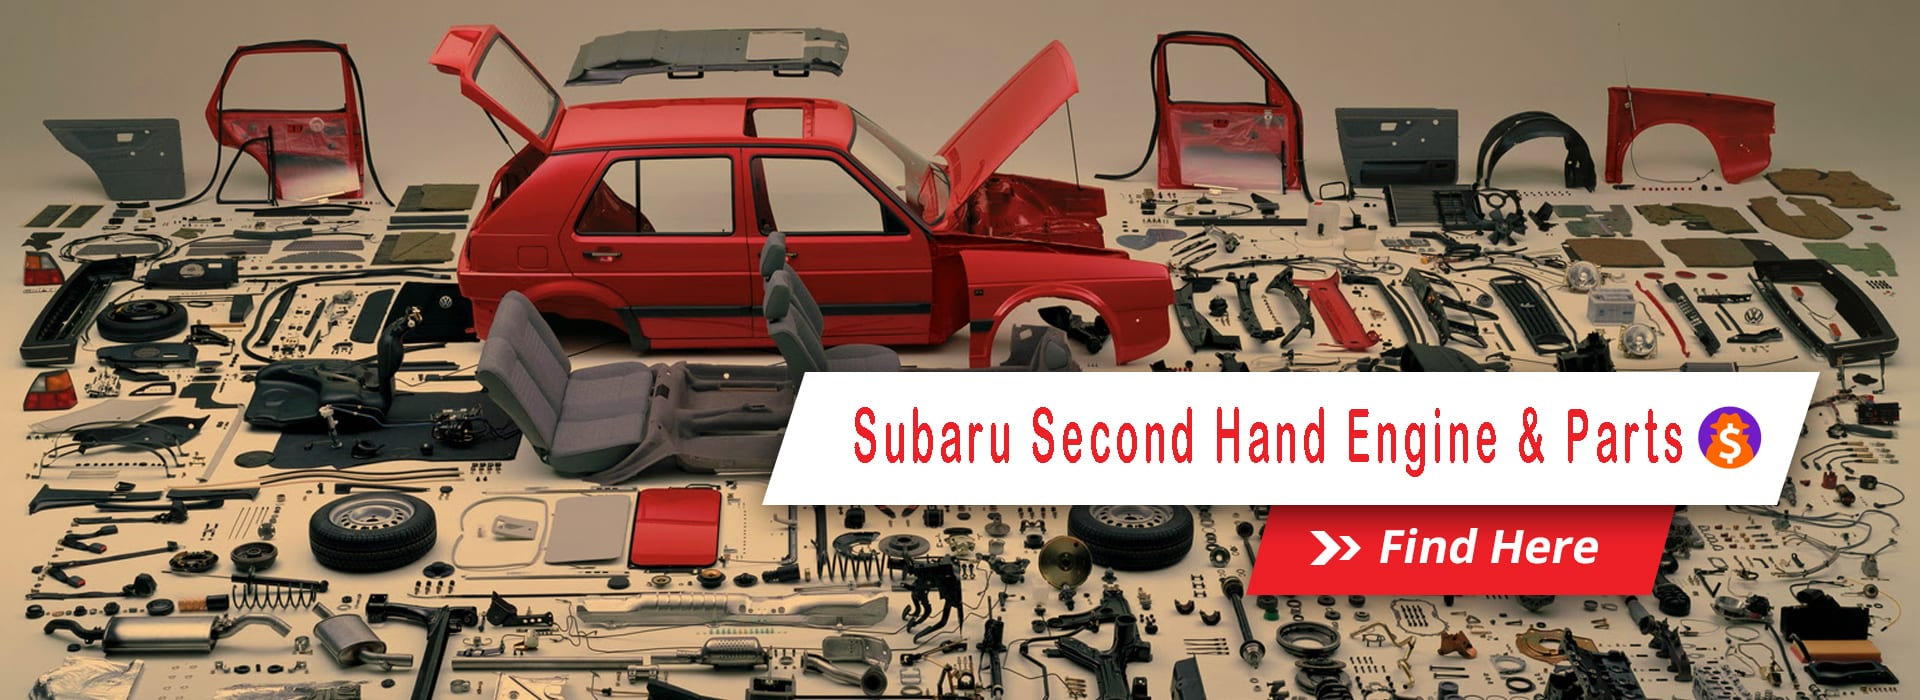 Subaru Second Hand Engine & Parts